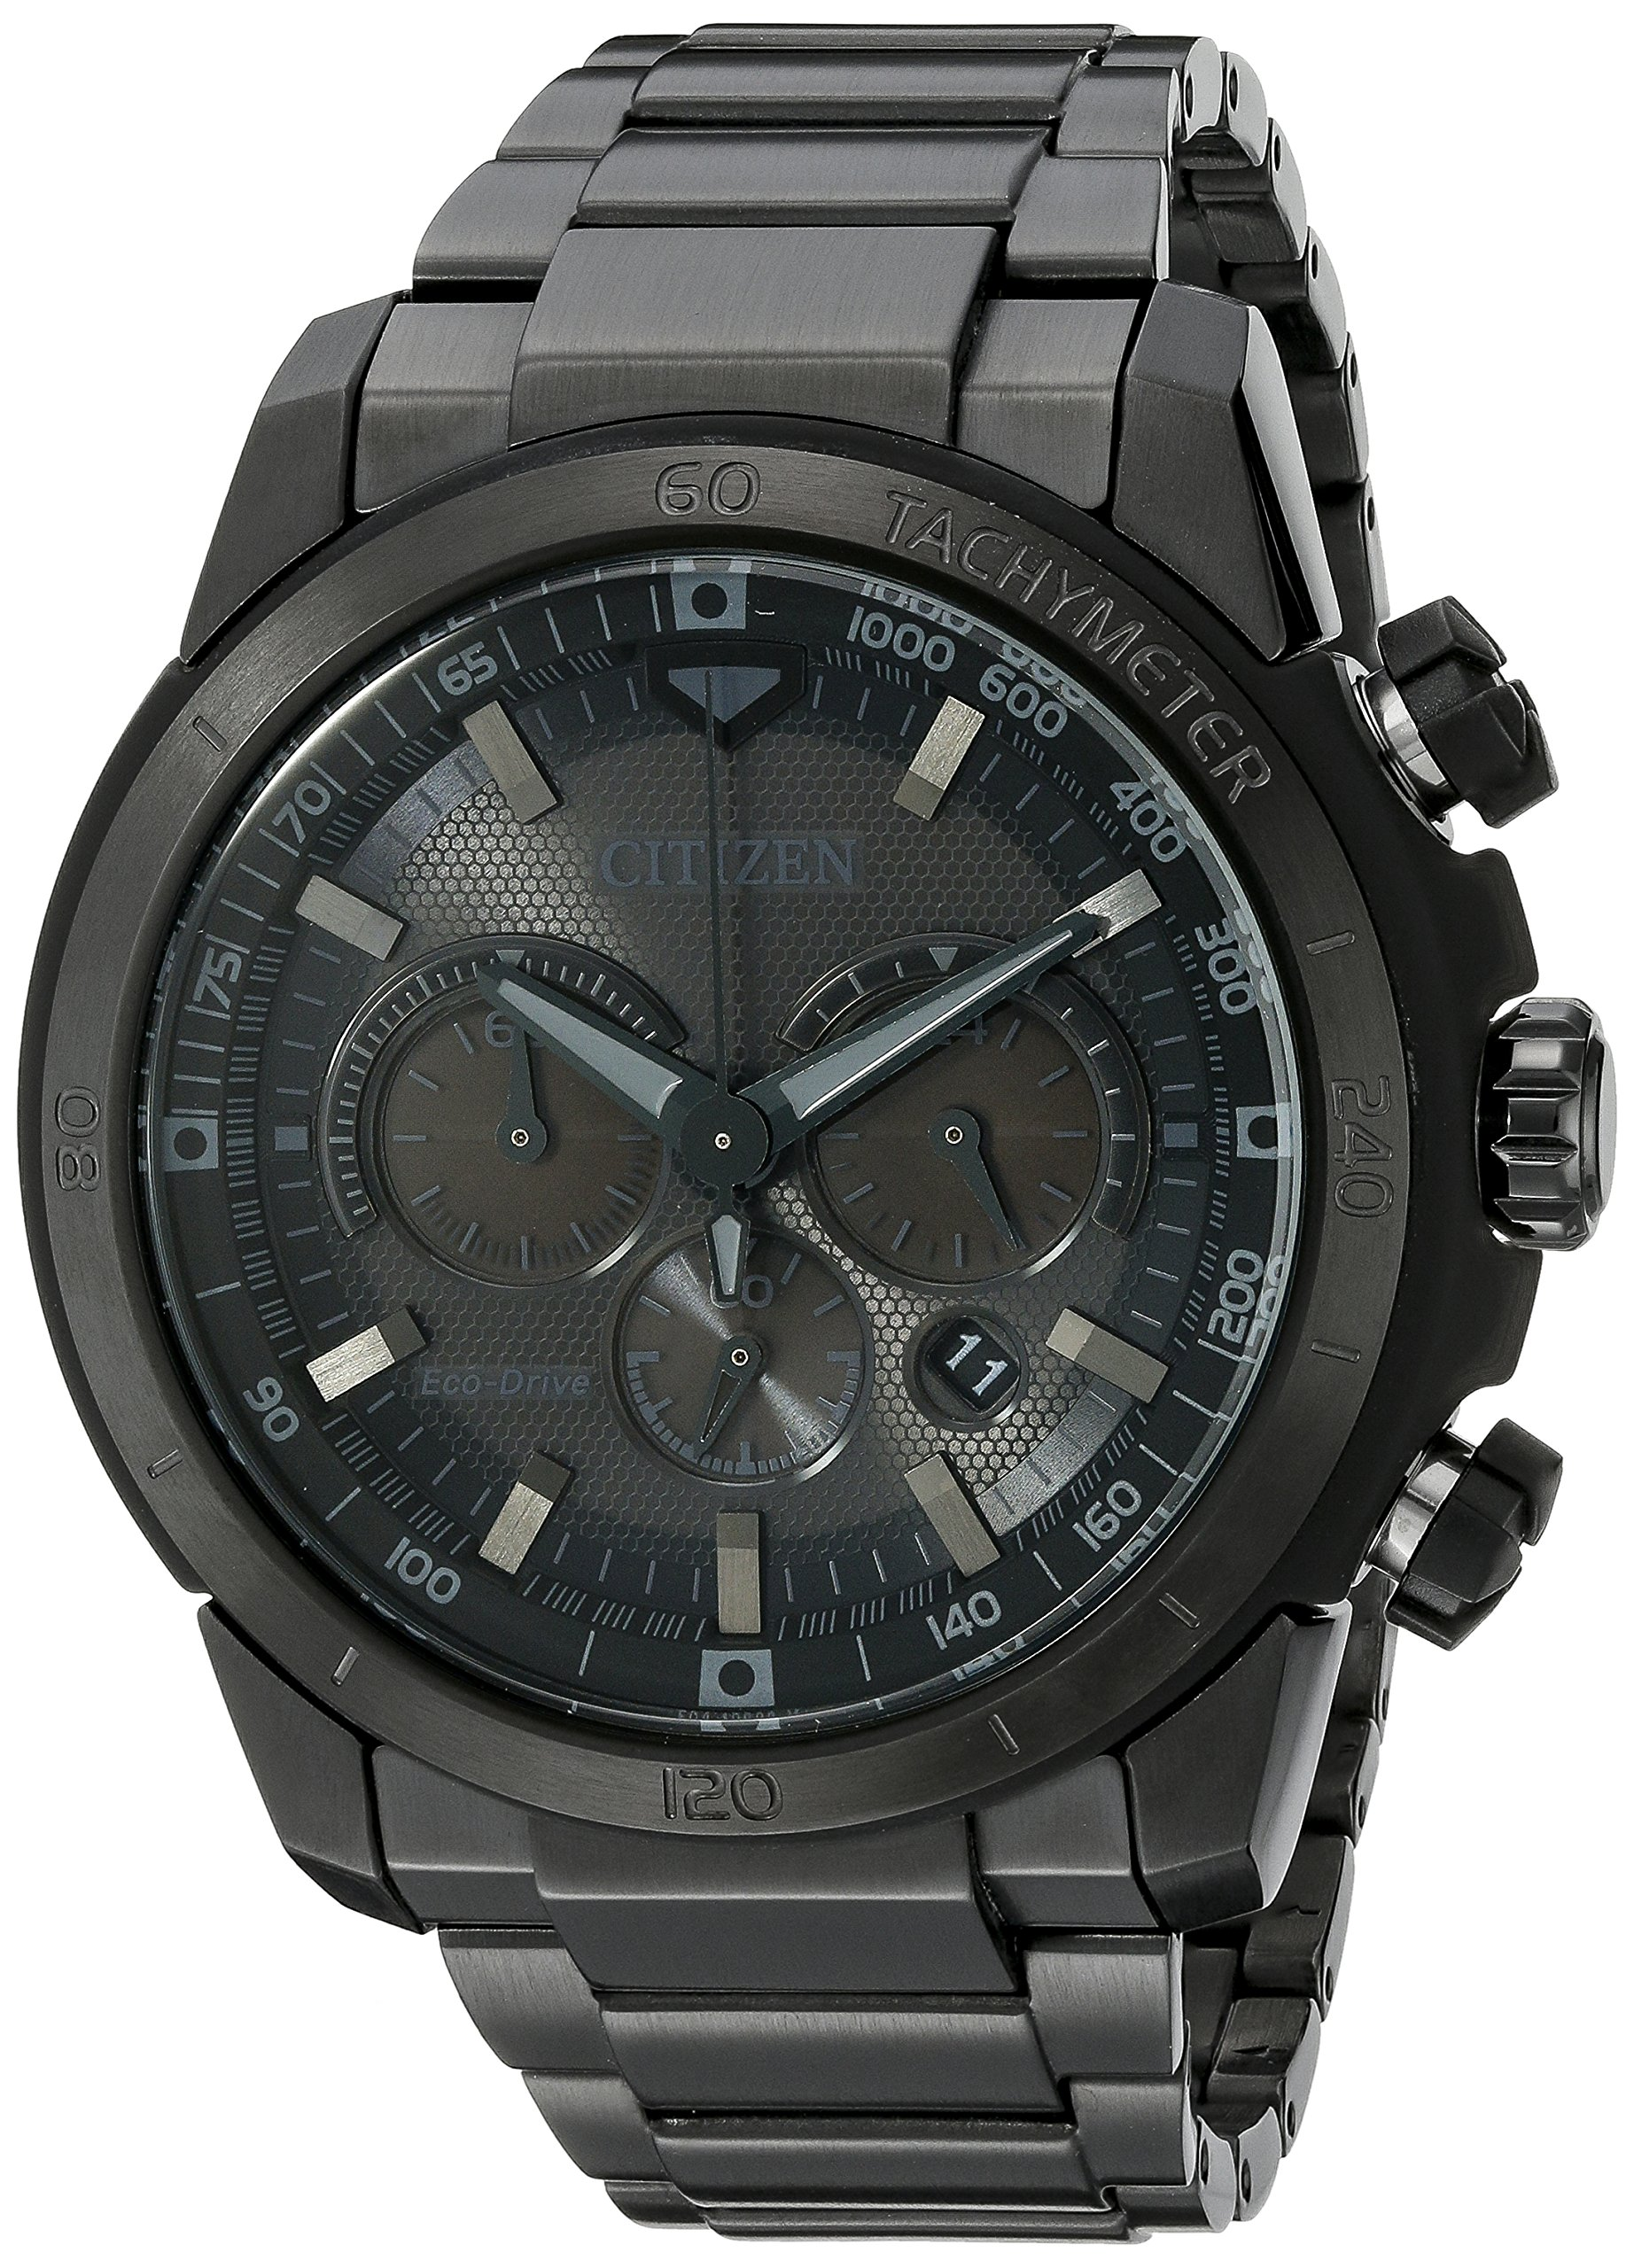 Citizen Men's Eco-Drive Chronograph Stainless Steel Watch with Date, CA4184-81E by Citizen